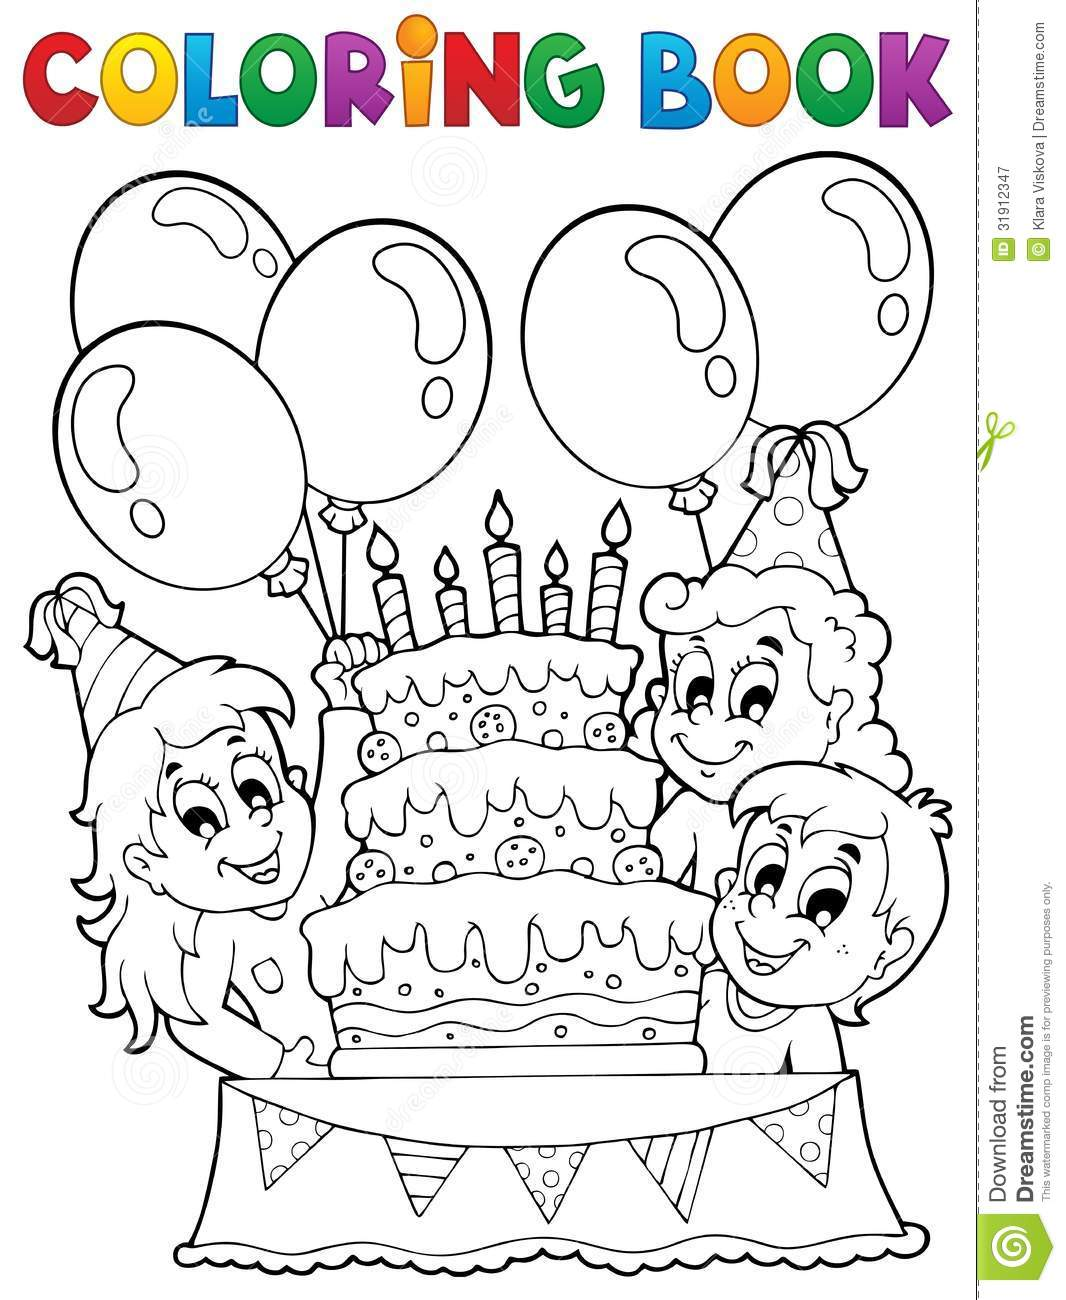 coloring book kids party theme 2 royalty free stock photography - Children Drawing Book Free Download